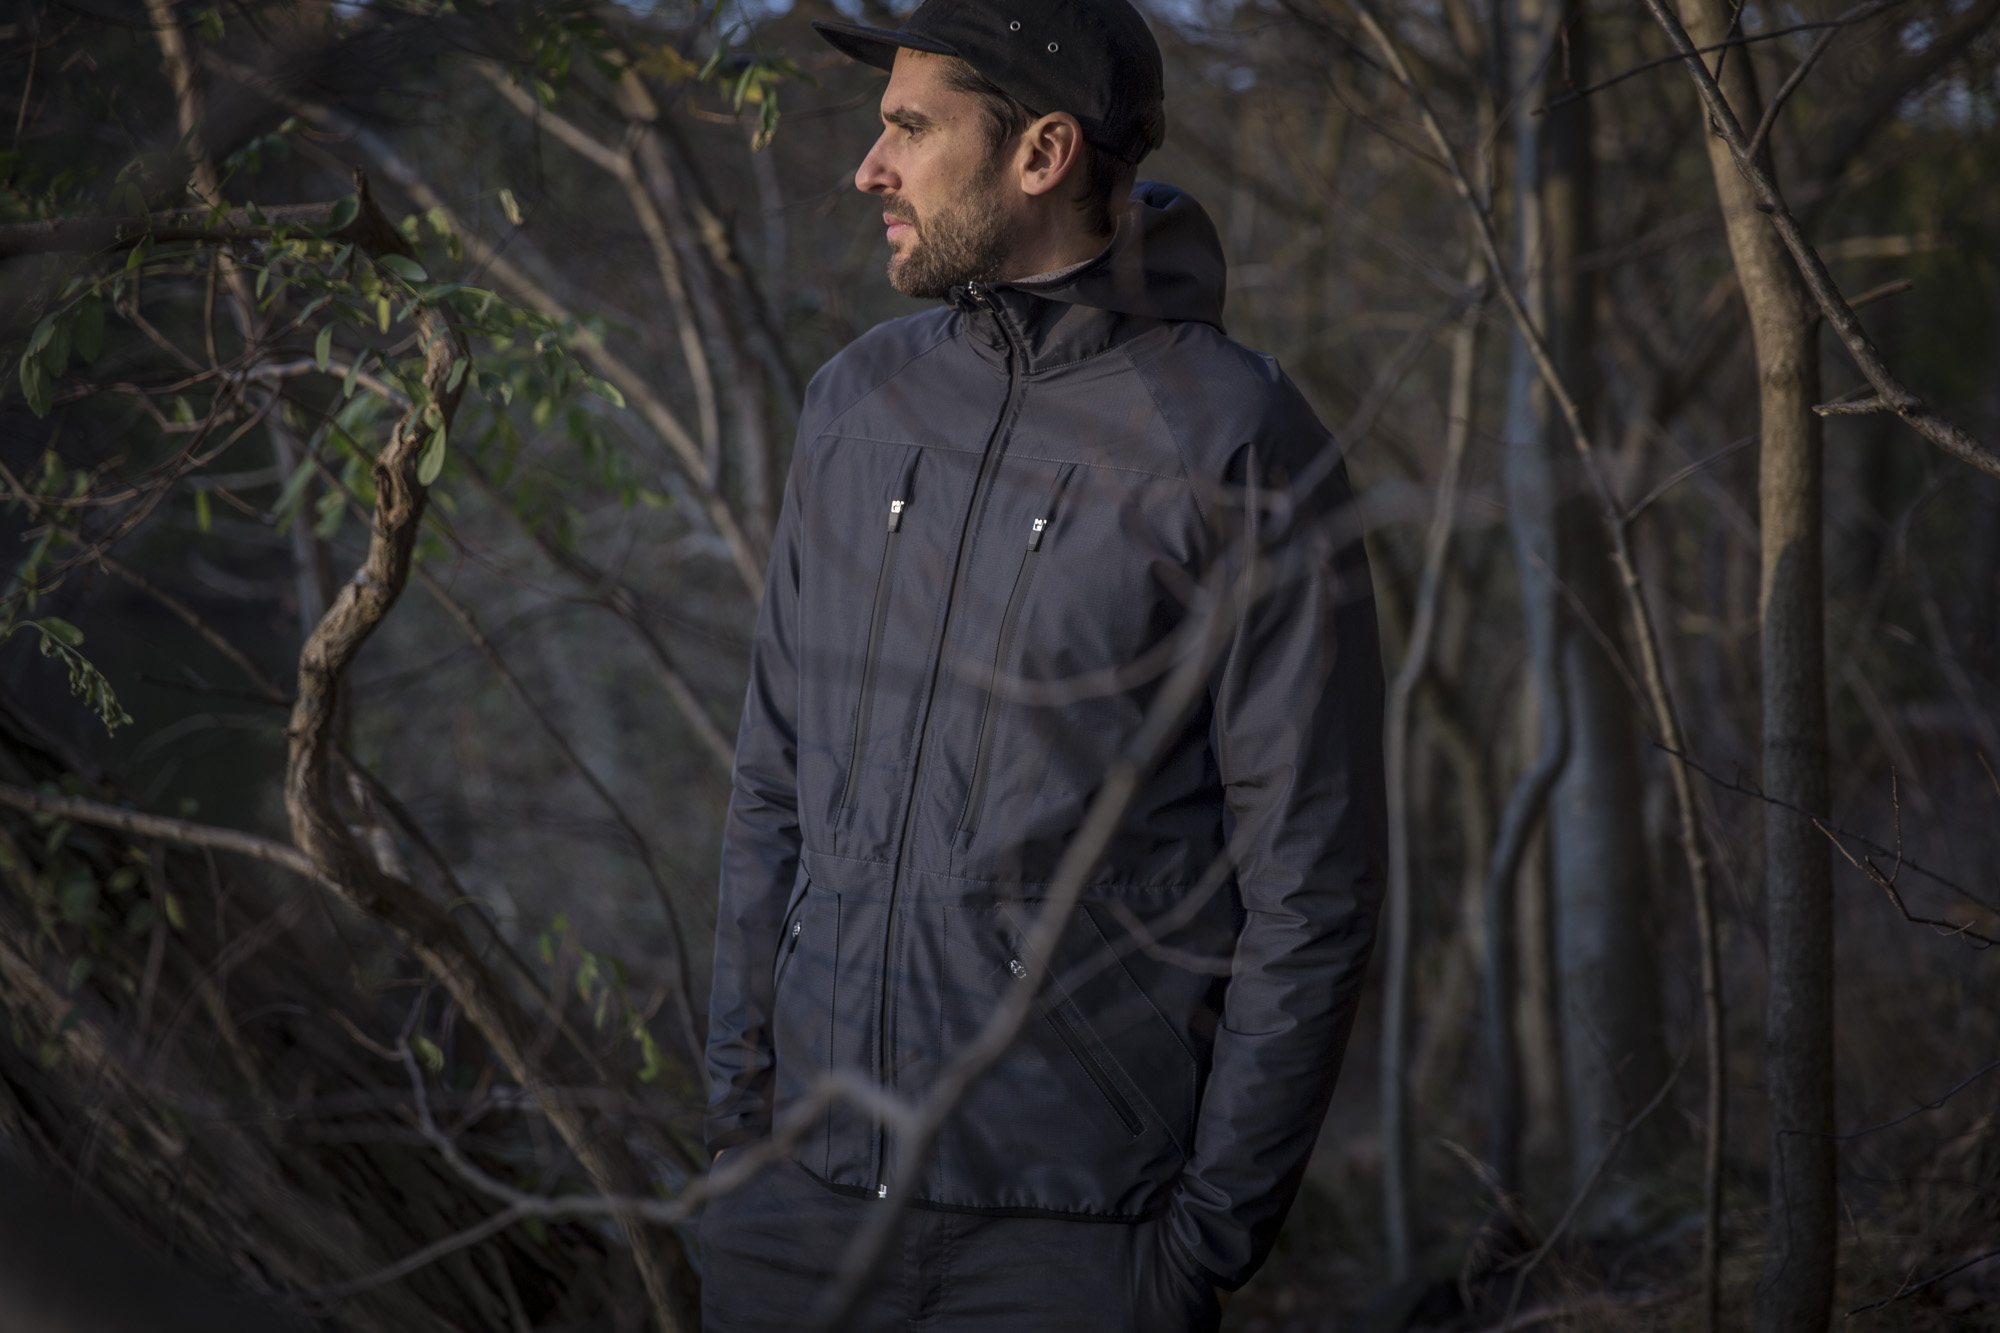 stay-hungry-outdoor-aesthetics-jacket-07